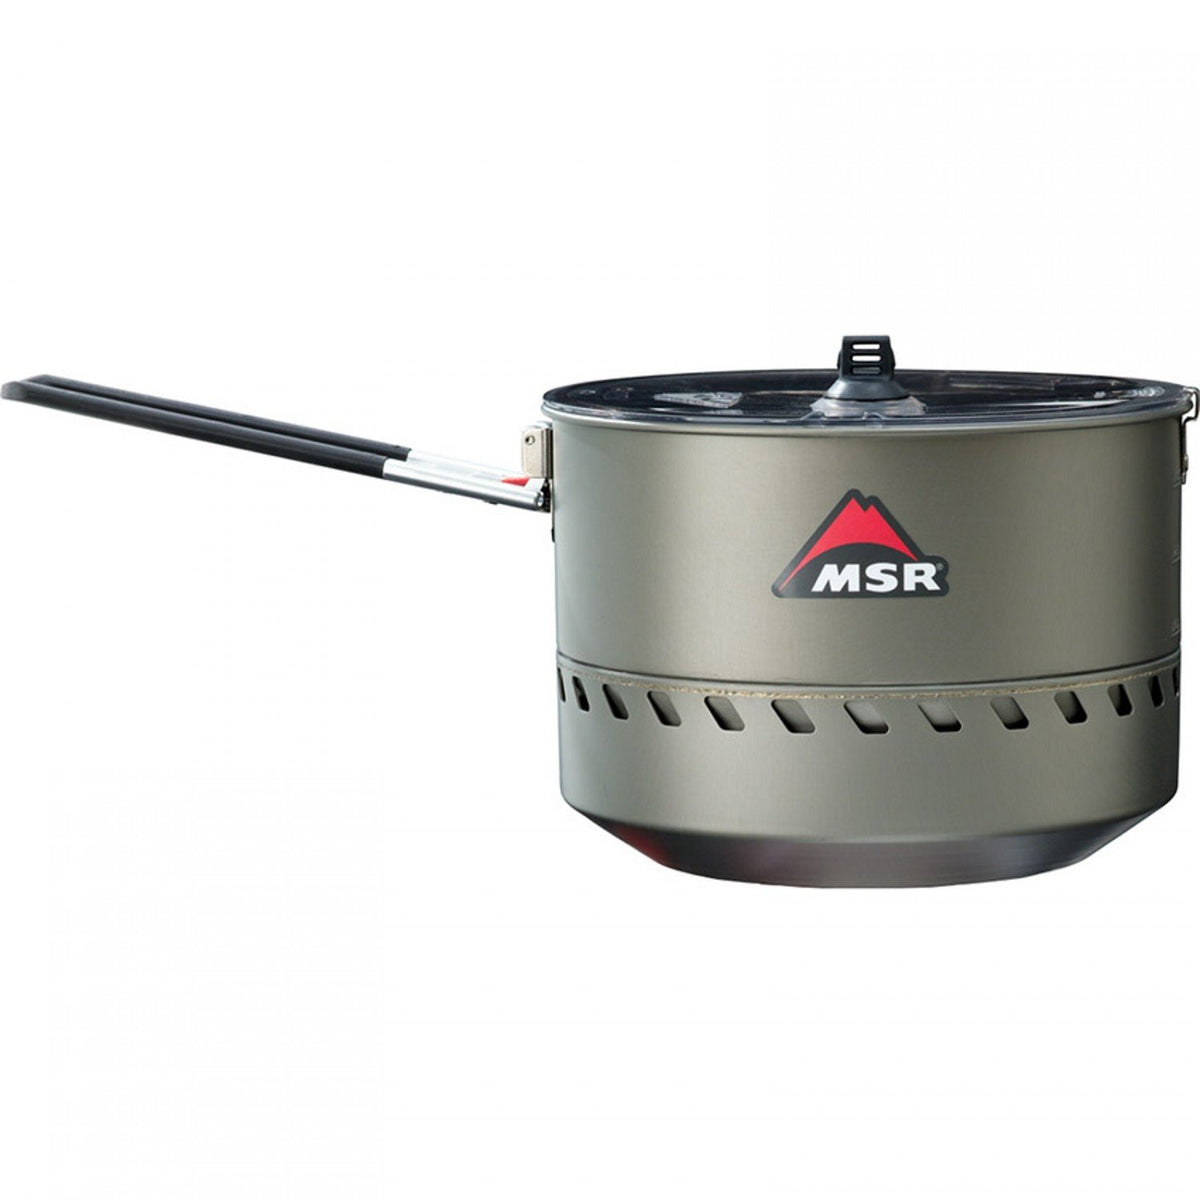 MSR Reactor 2.5L camping Pot in silver colour